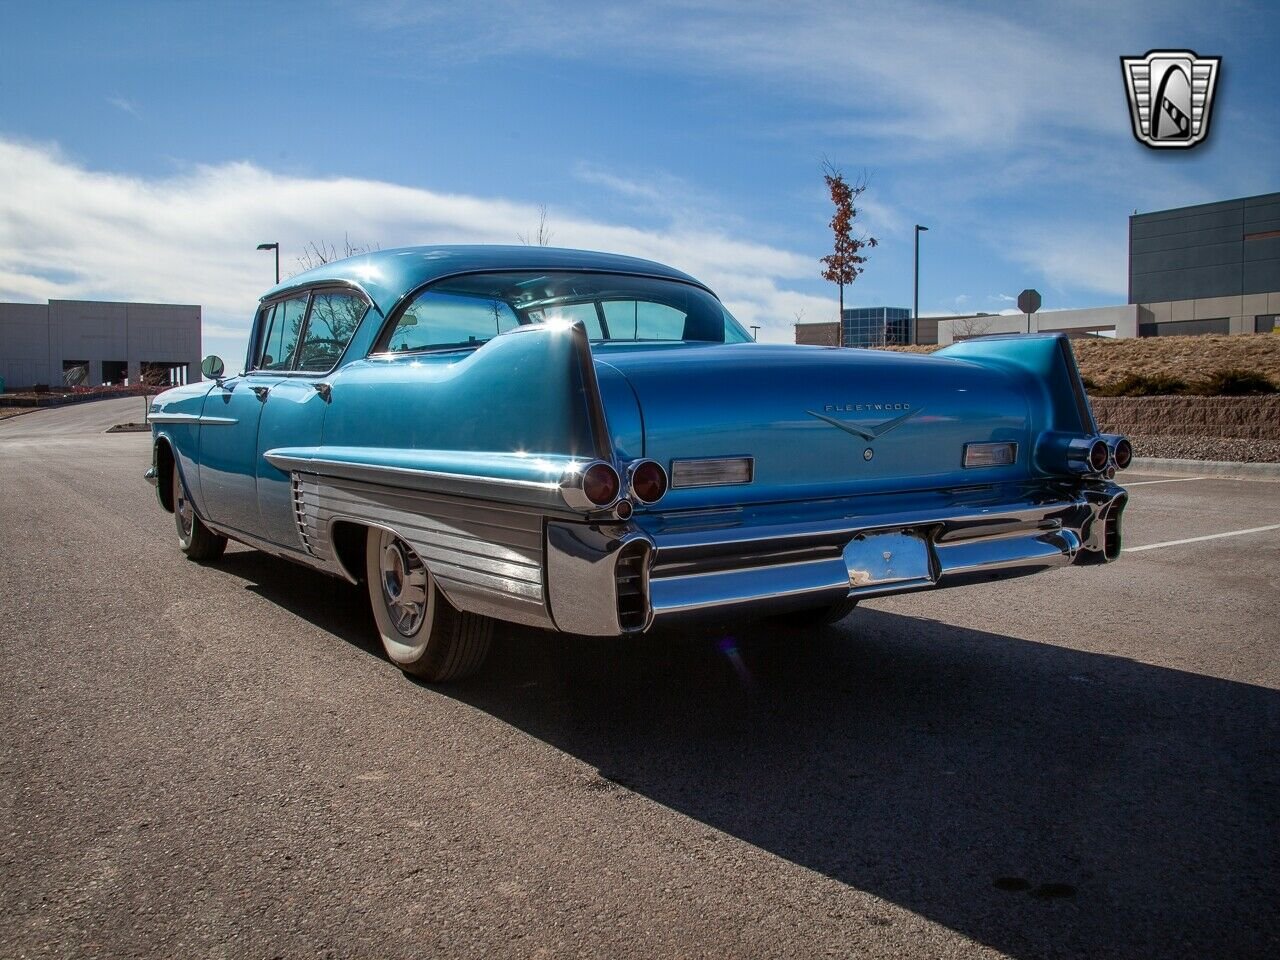 Blue 1957 Cadillac Fleetwood  365 CI V-8 4 speed Automatic Available Now!